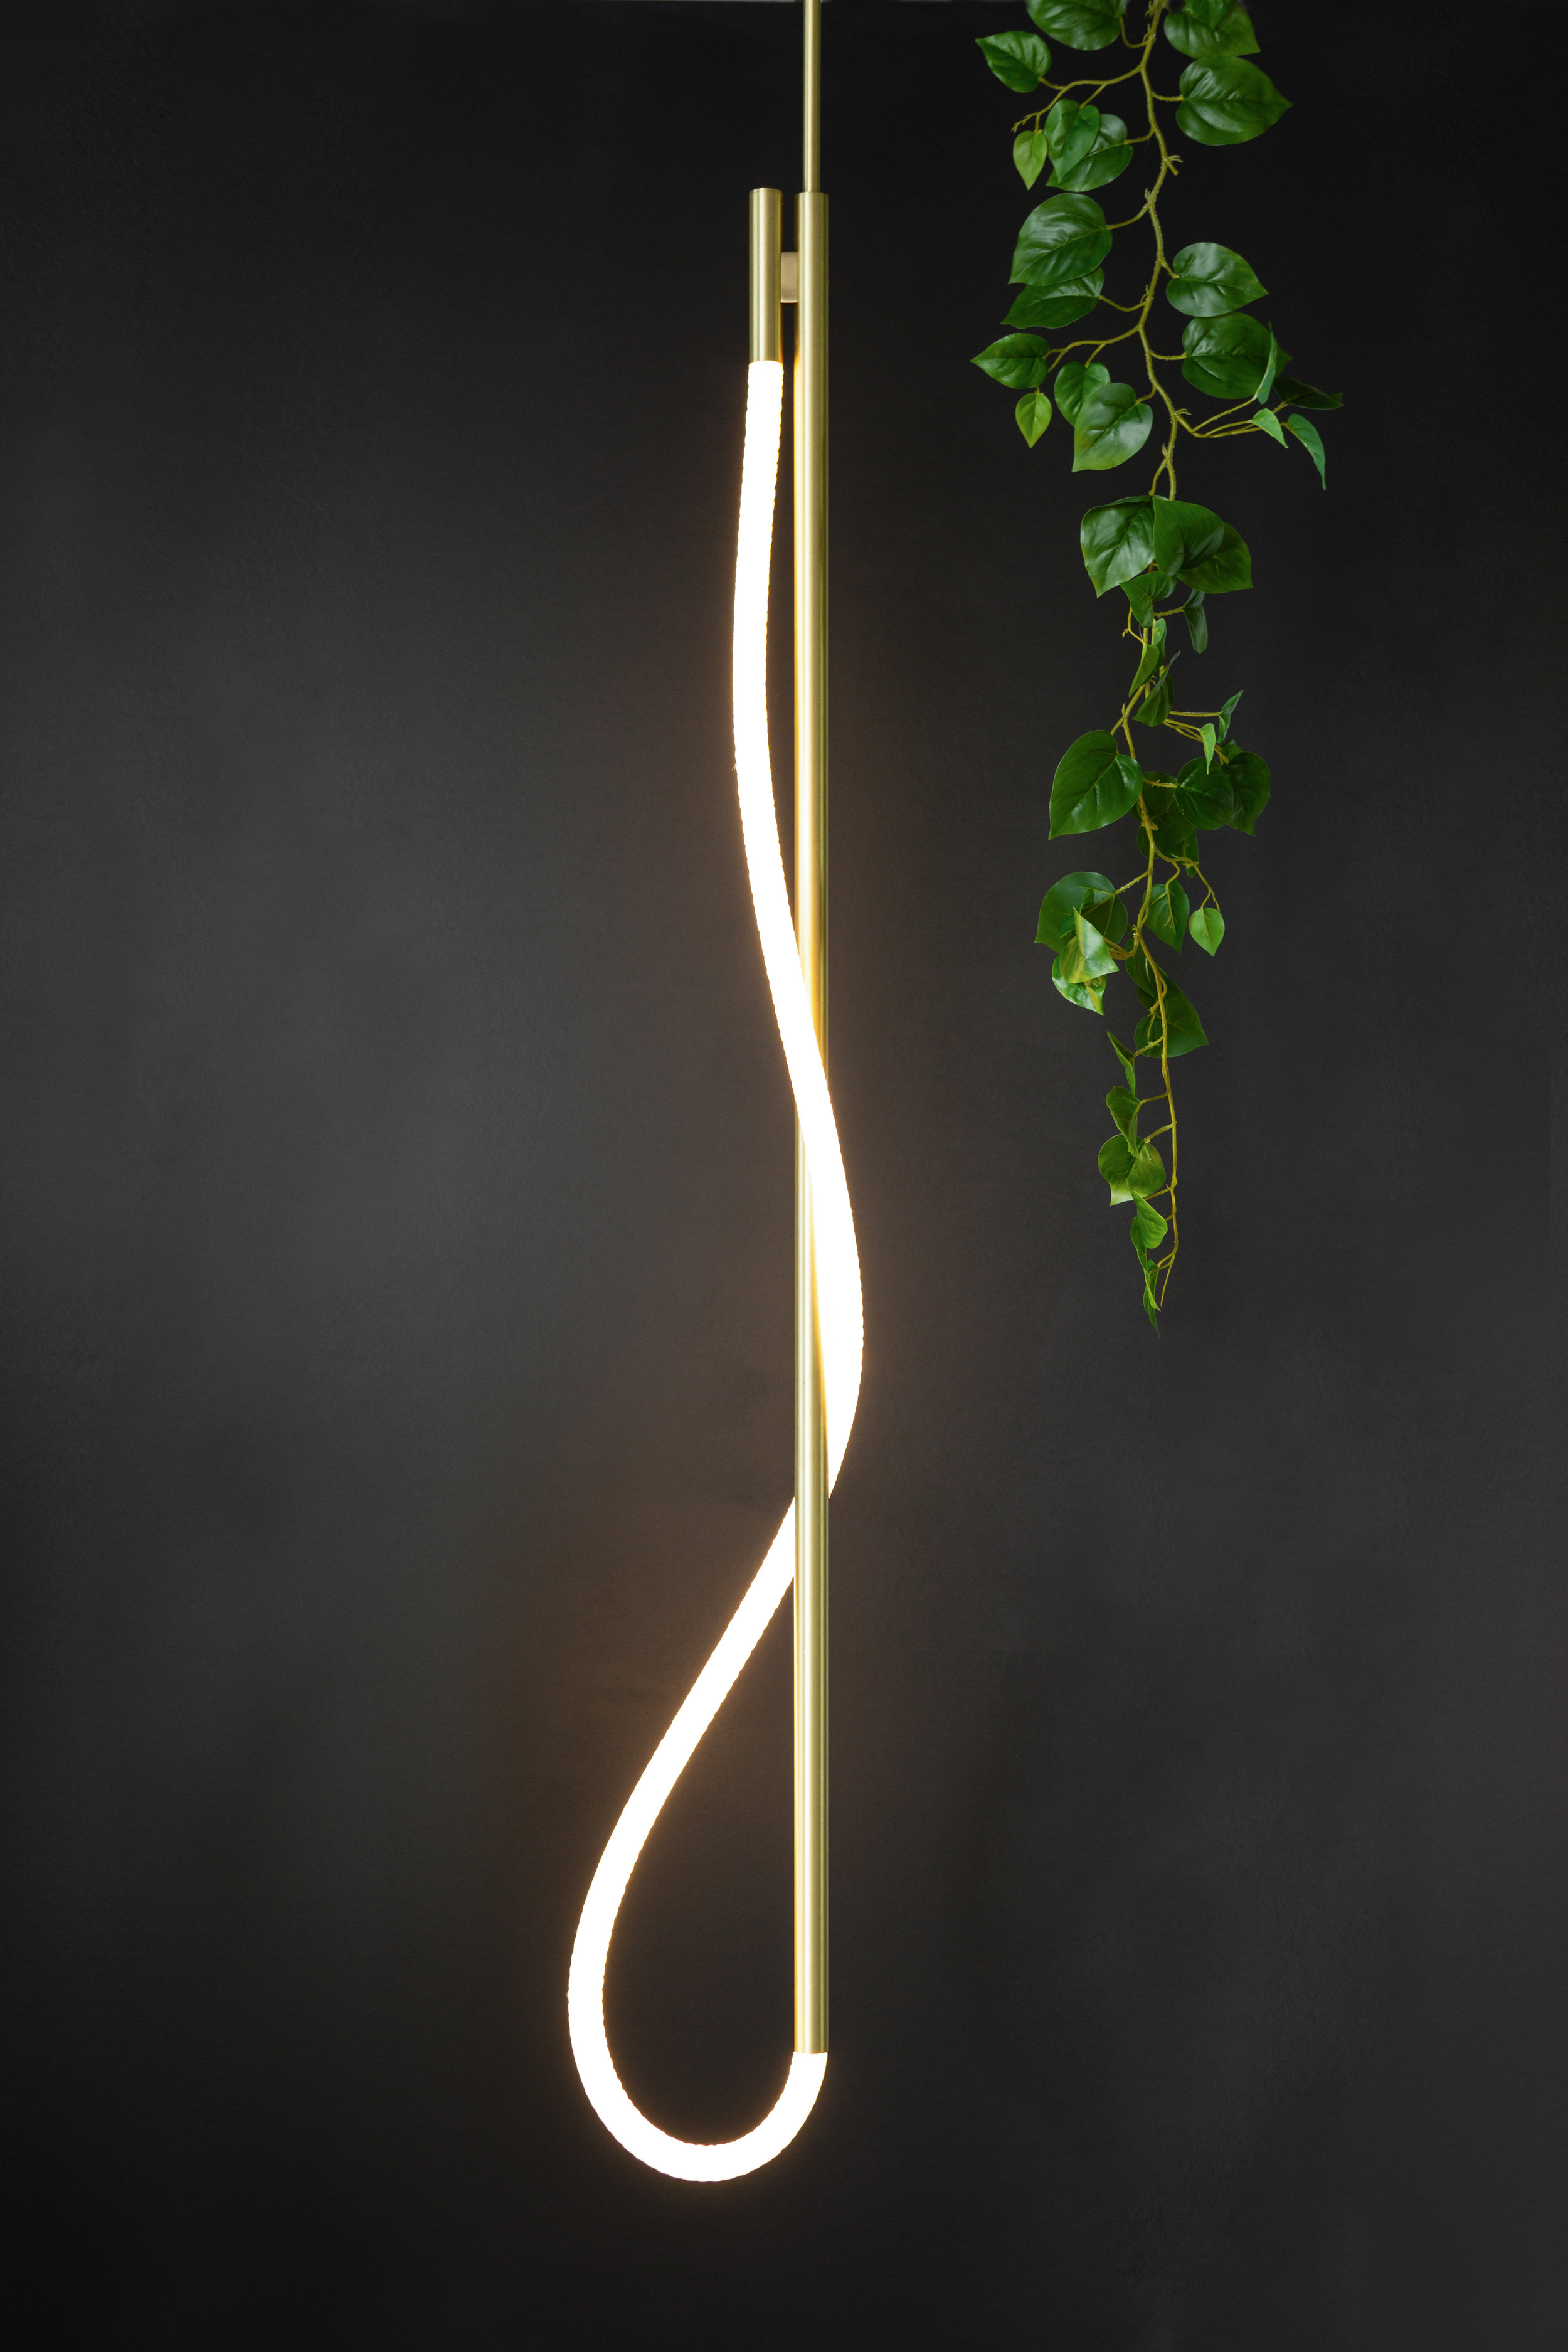 As pictured: 4.5' Surrey Pendant in Satin Brass